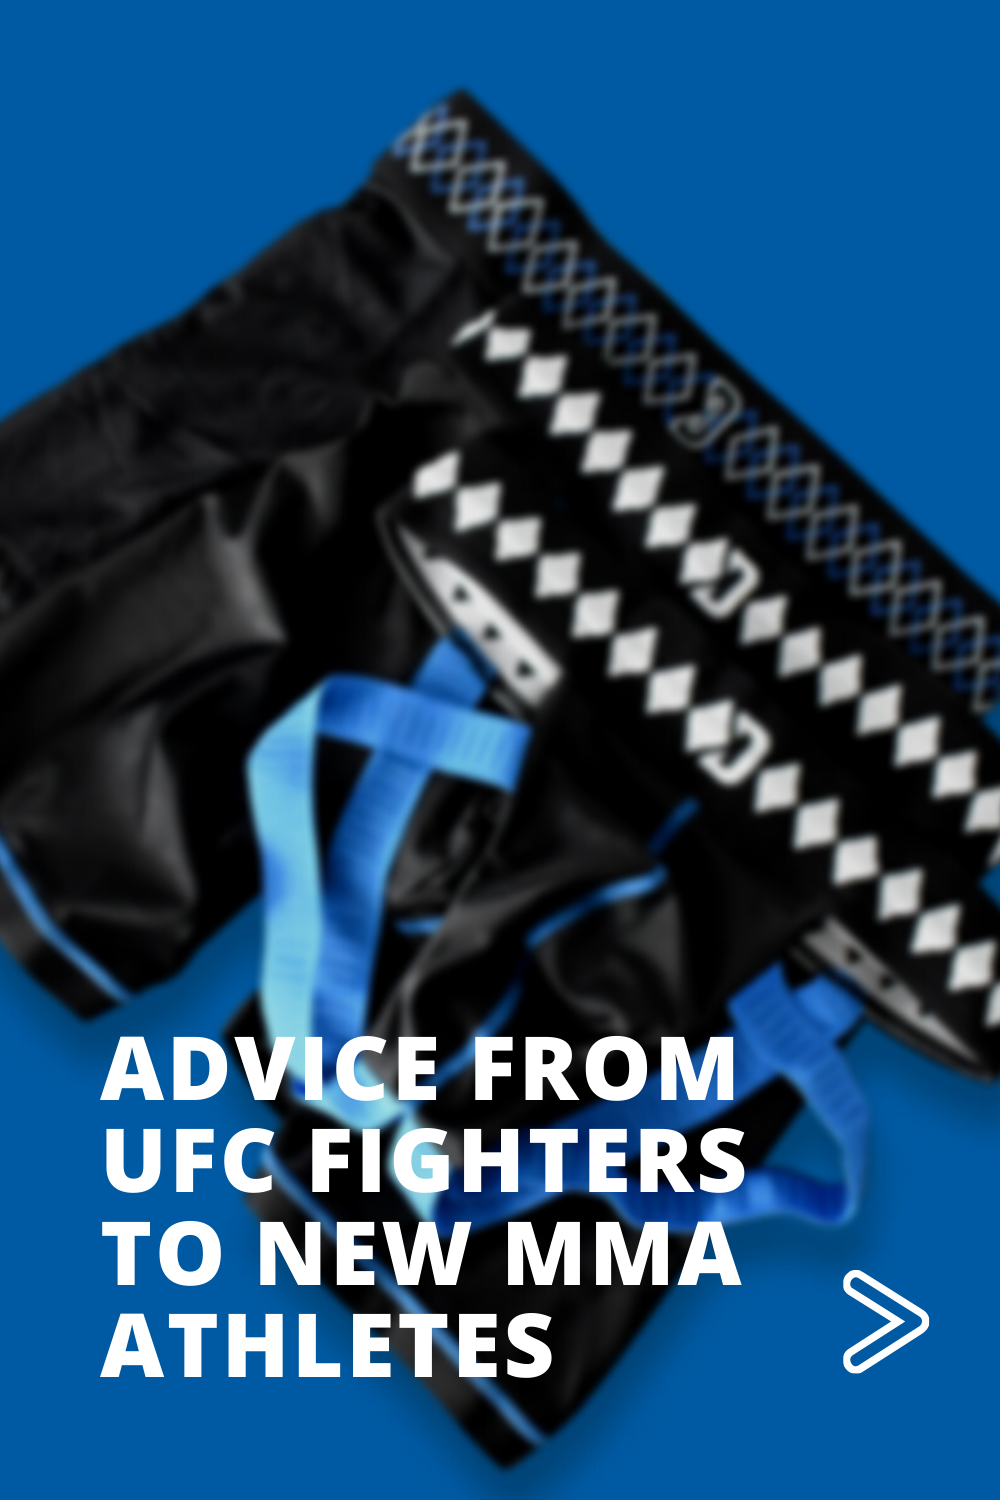 Advice from UFC Fighters to New MMA Athletes